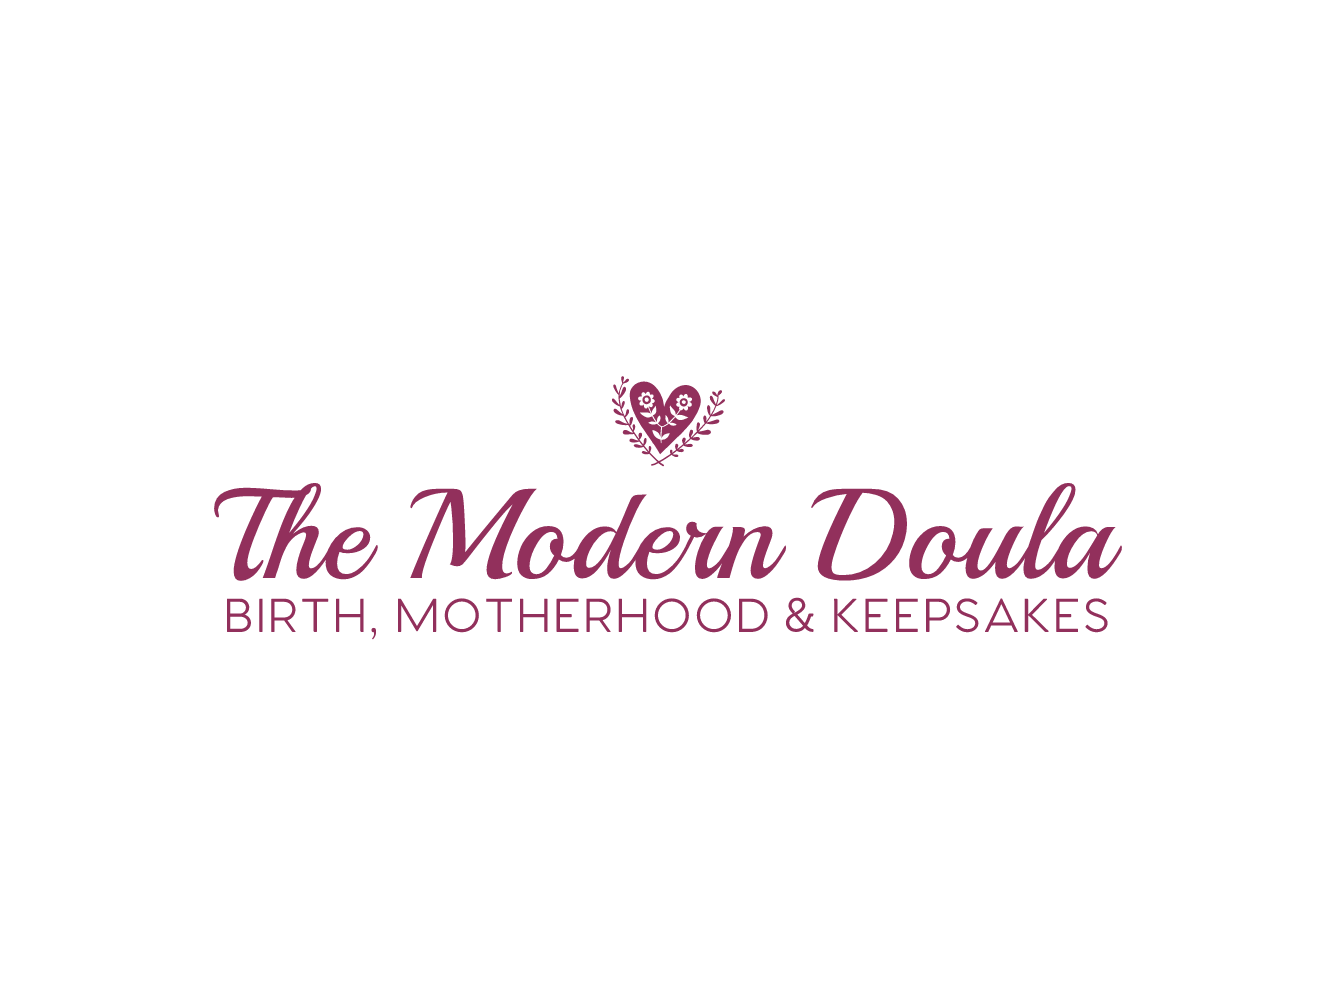 The Modern Doula